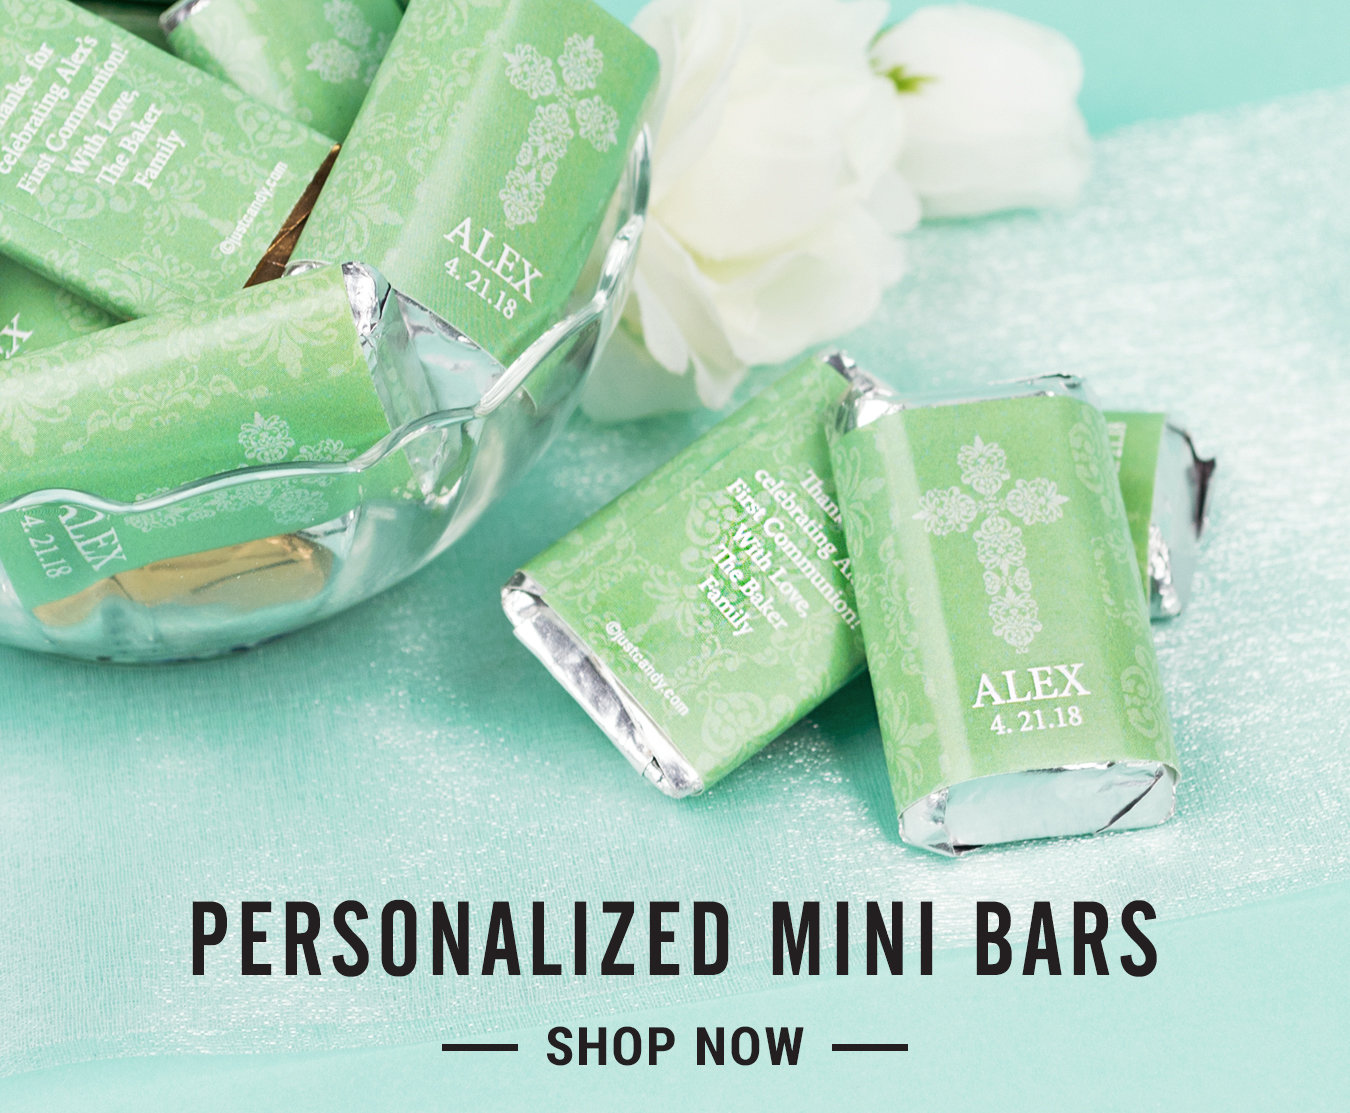 Personalized Mini Bars